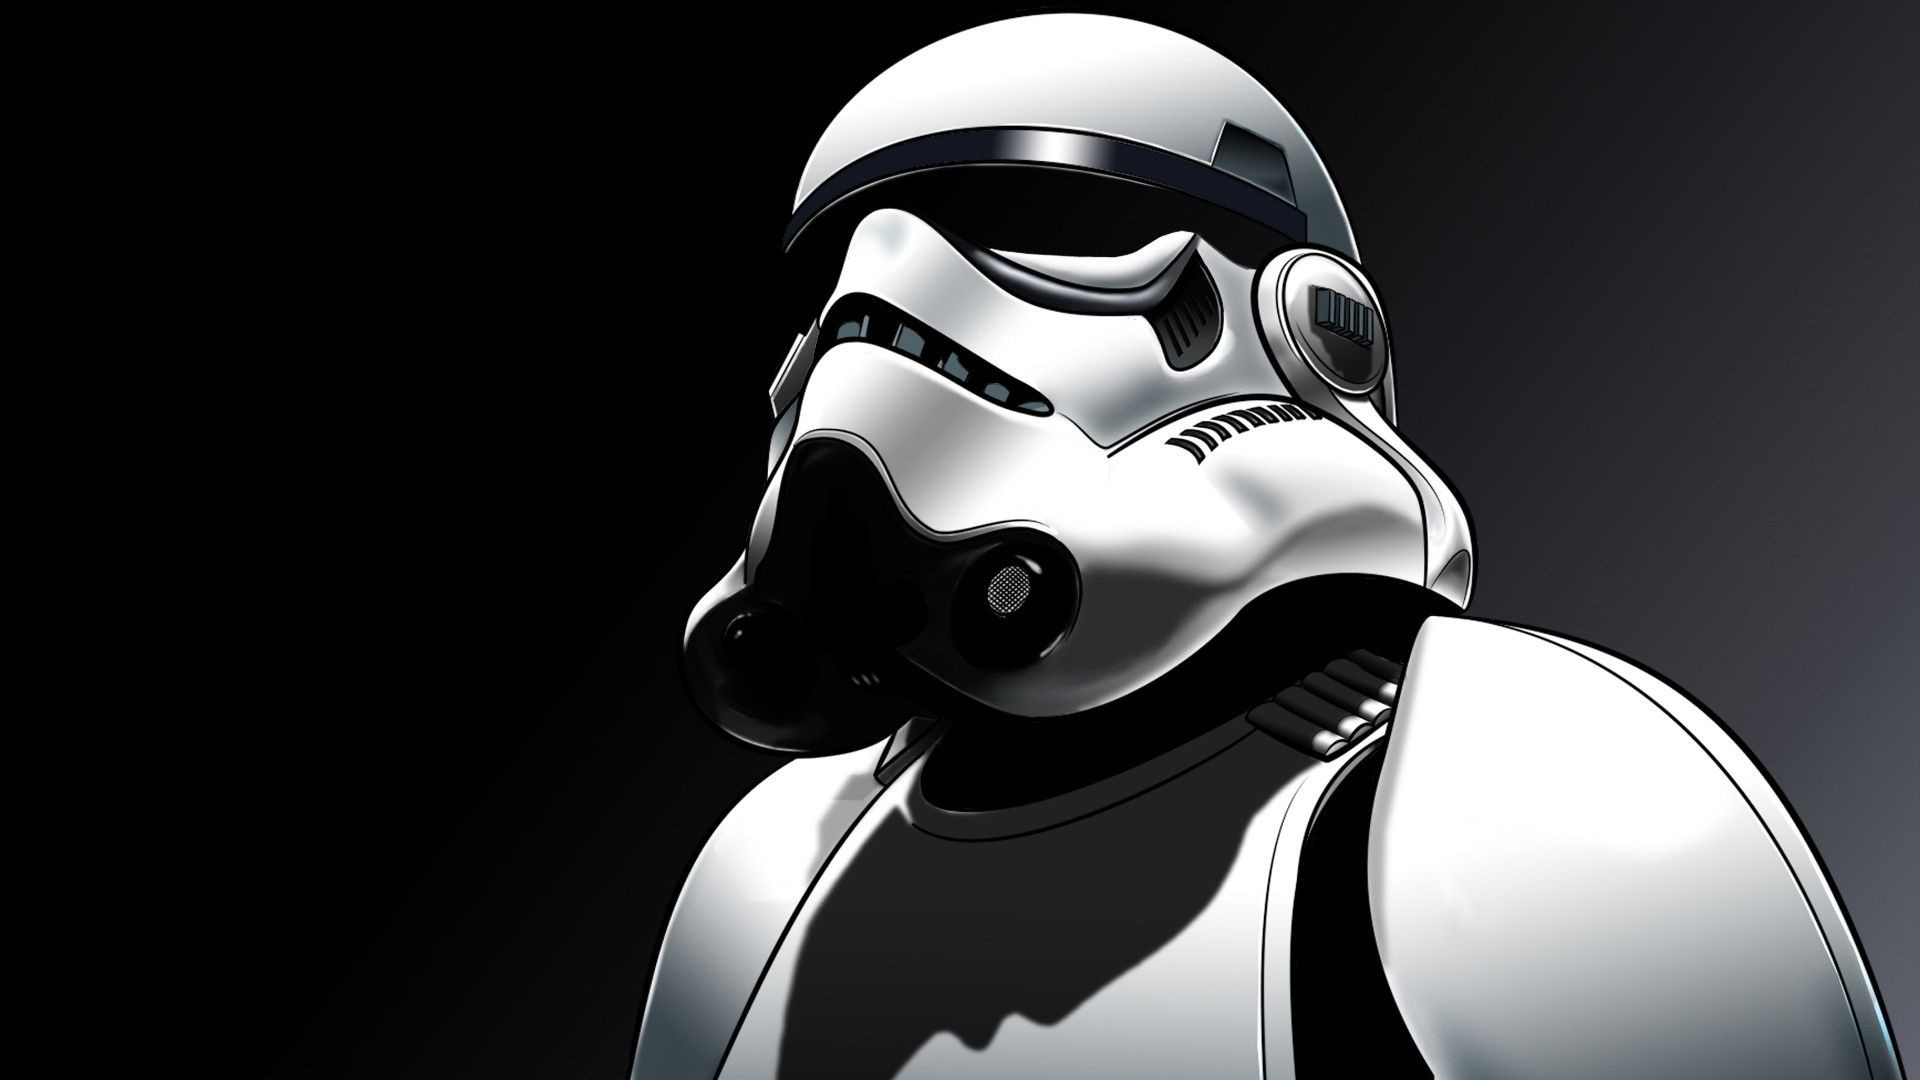 Star wars wallpaper download free awesome wallpapers of - Star wars wallpaper ...